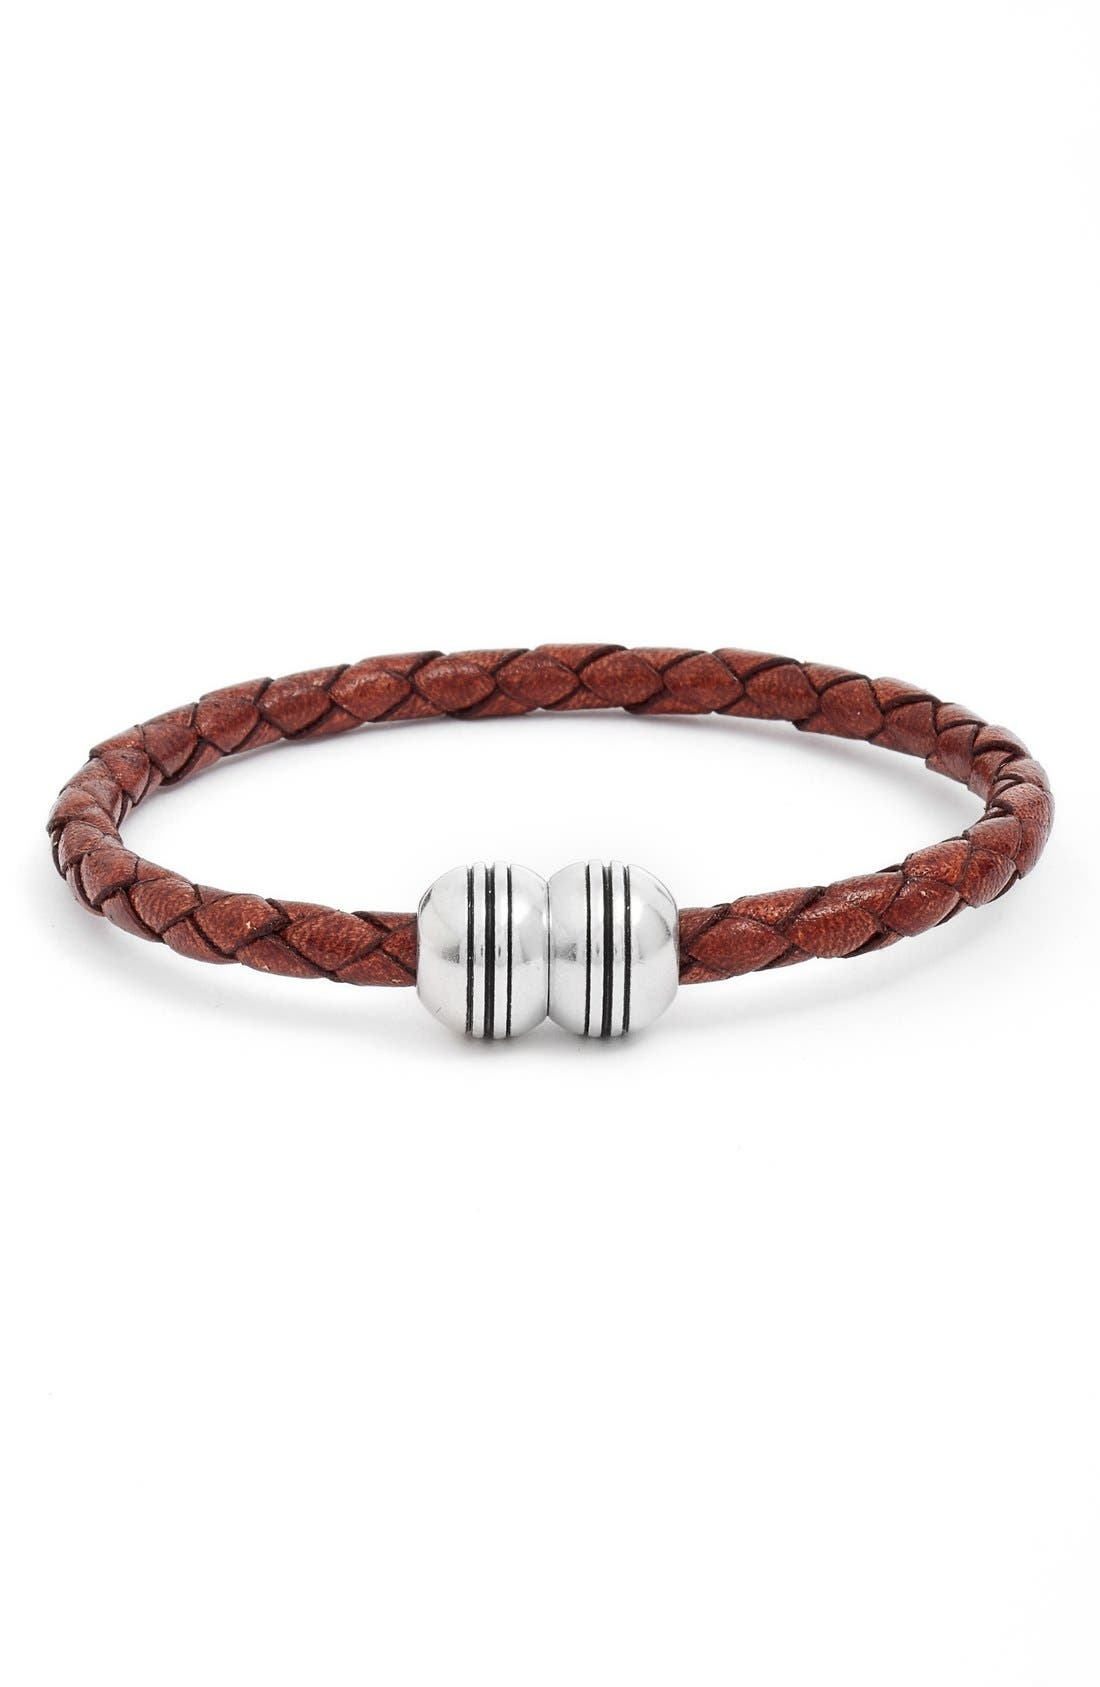 Main Image - Torino Belts Braided Leather Bracelet